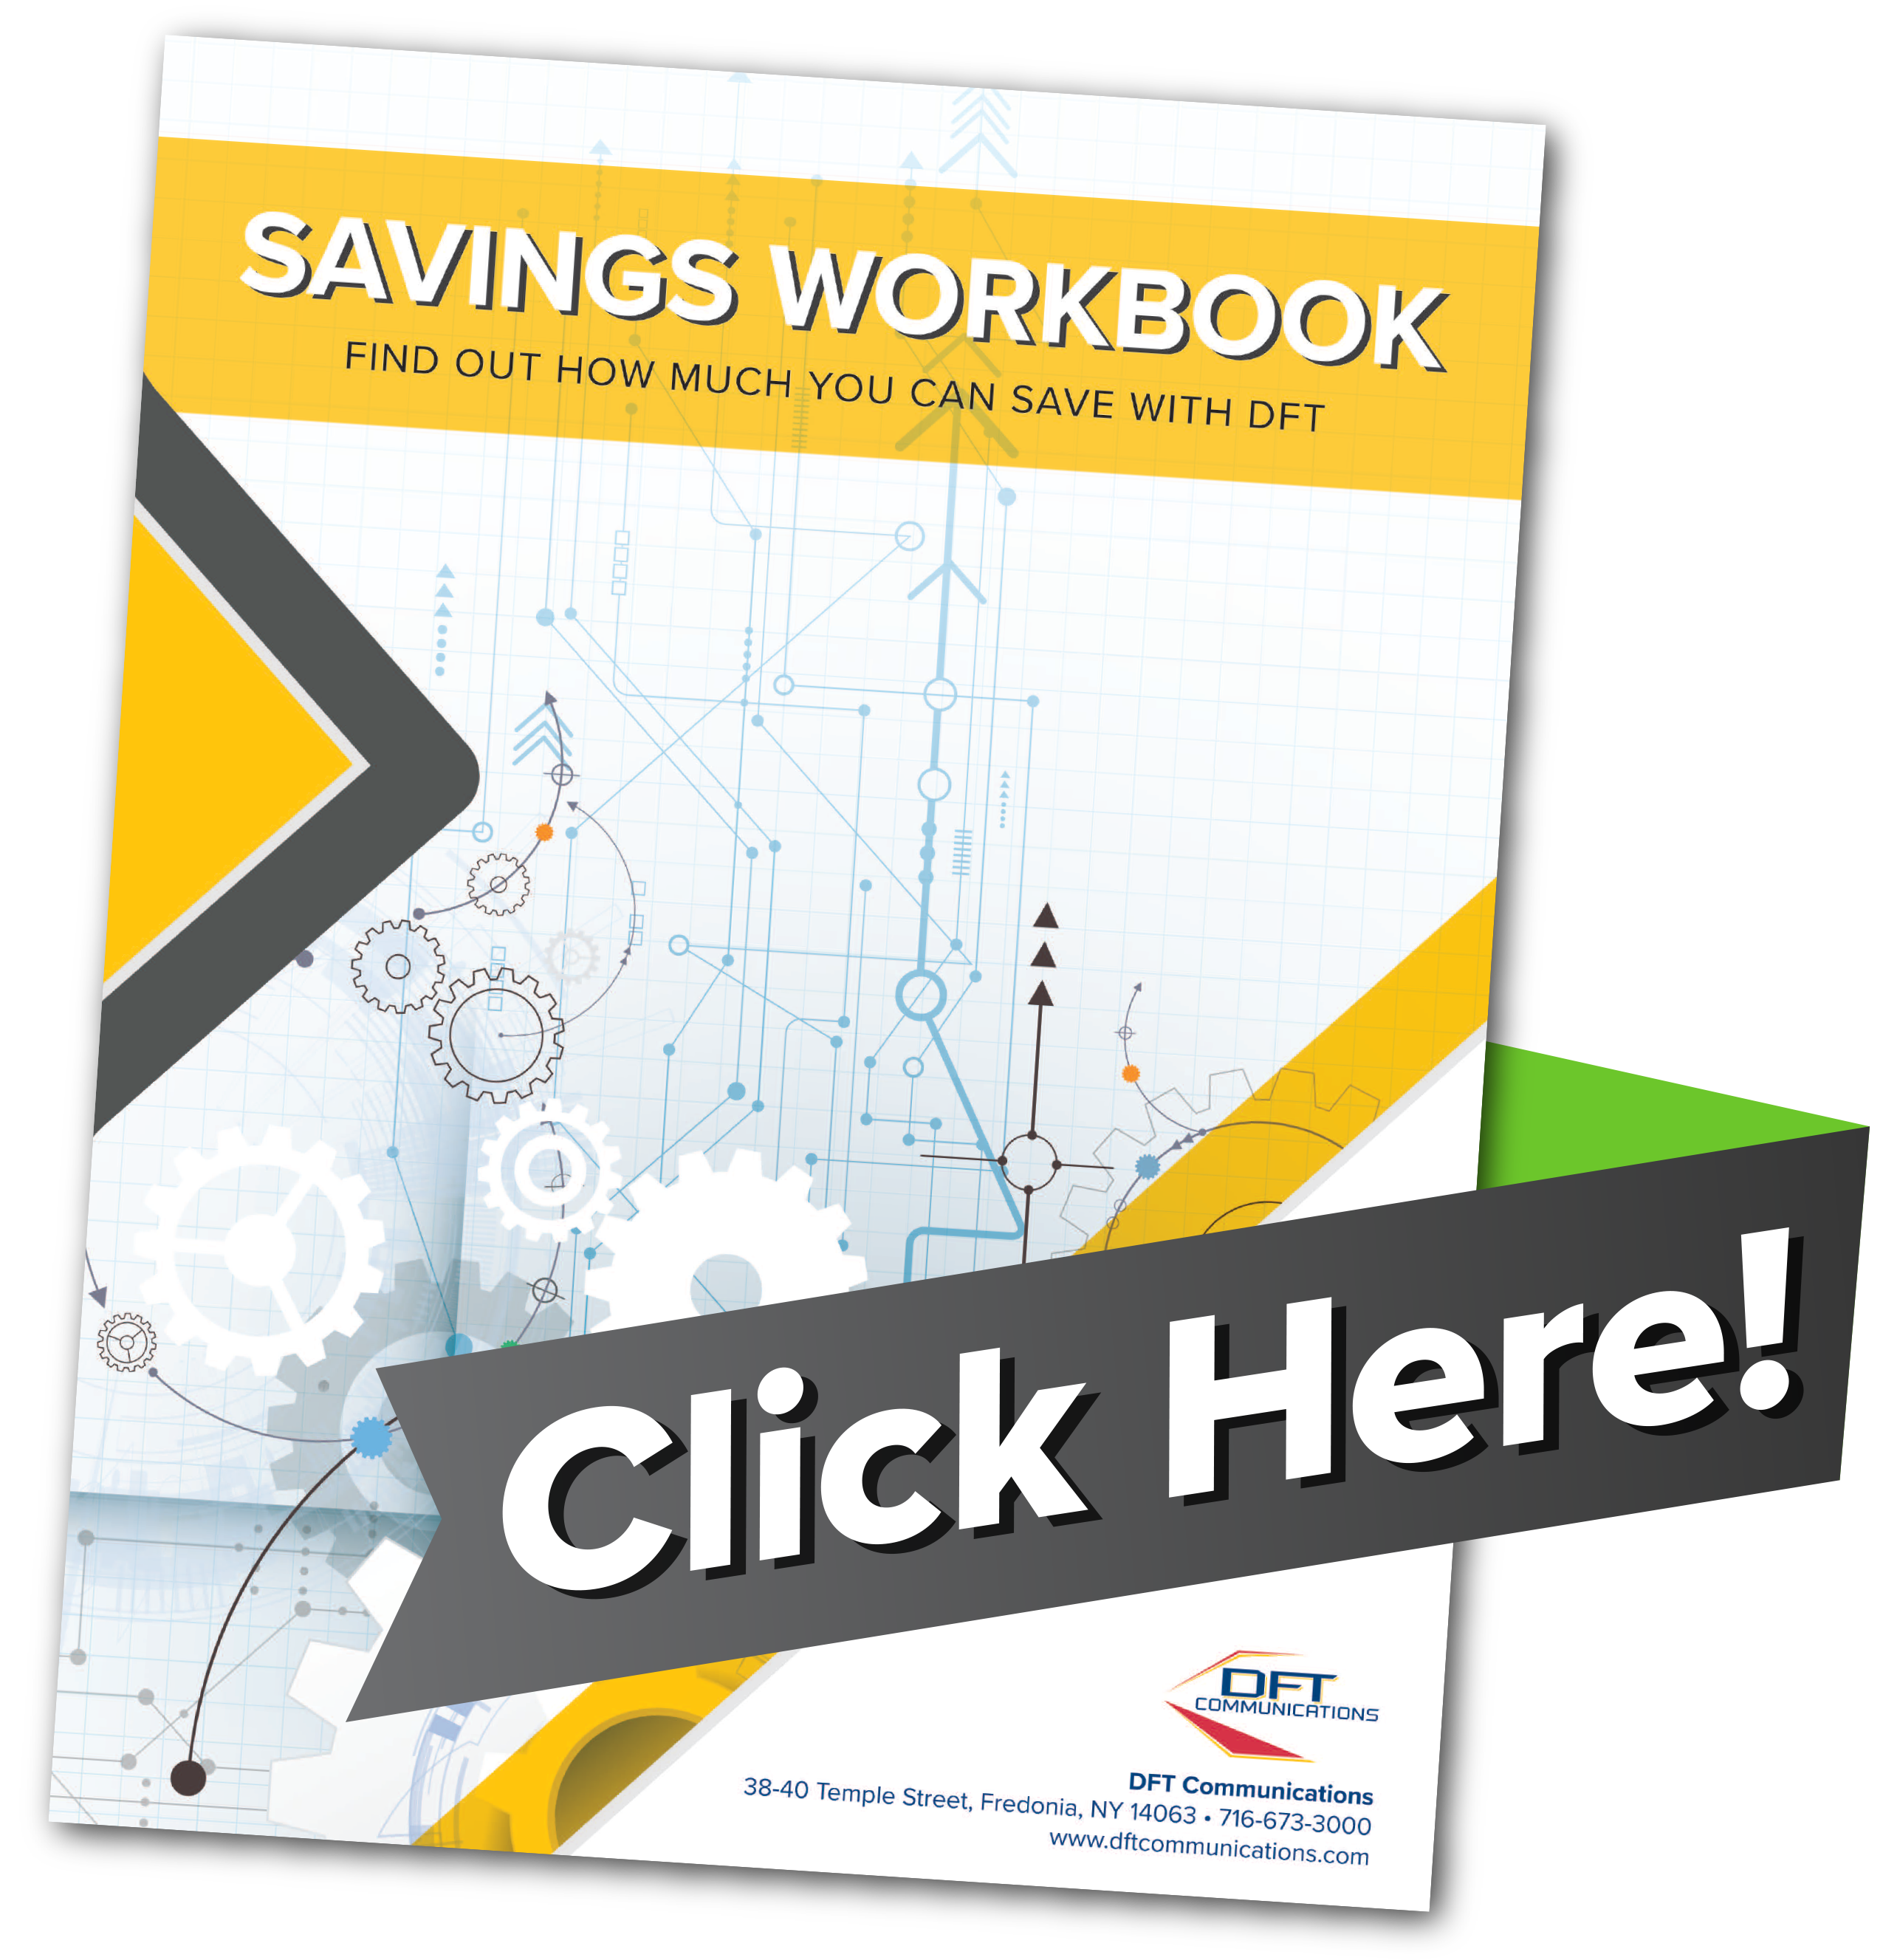 Click here to view or download our price comparison workbook.